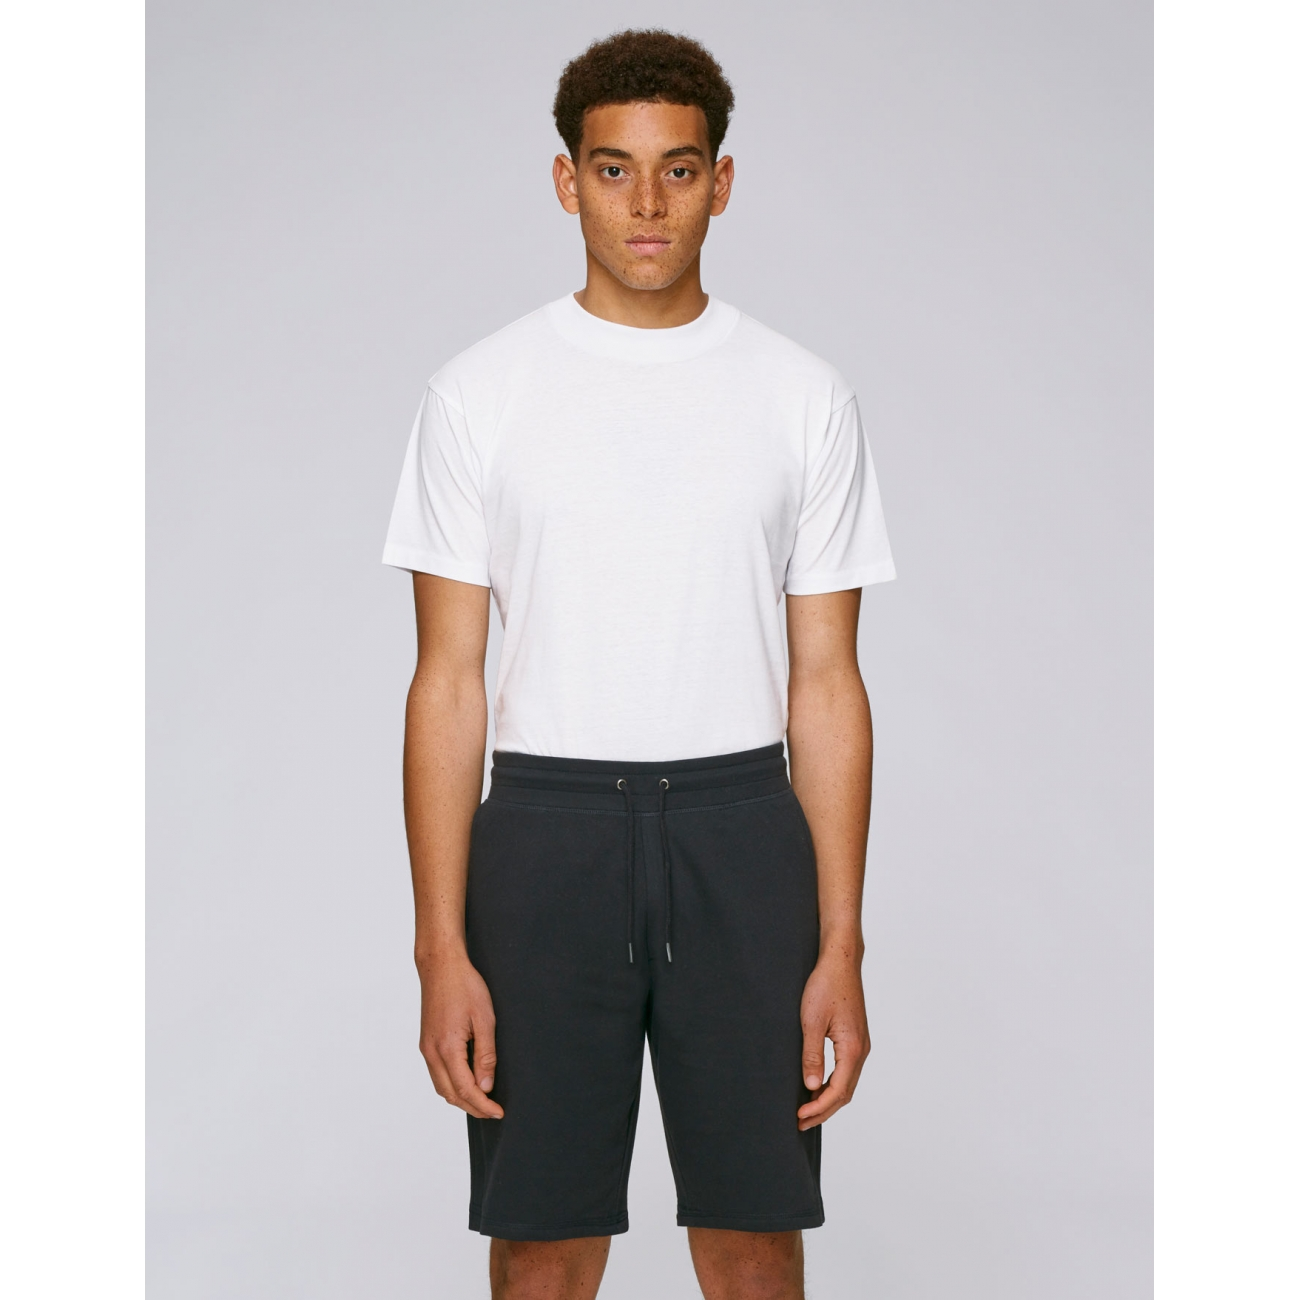 https://tee-shirt-bio.com/5933-thickbox_default/short-de-jogging-en-coton-bio-noir-pour-homme.jpg